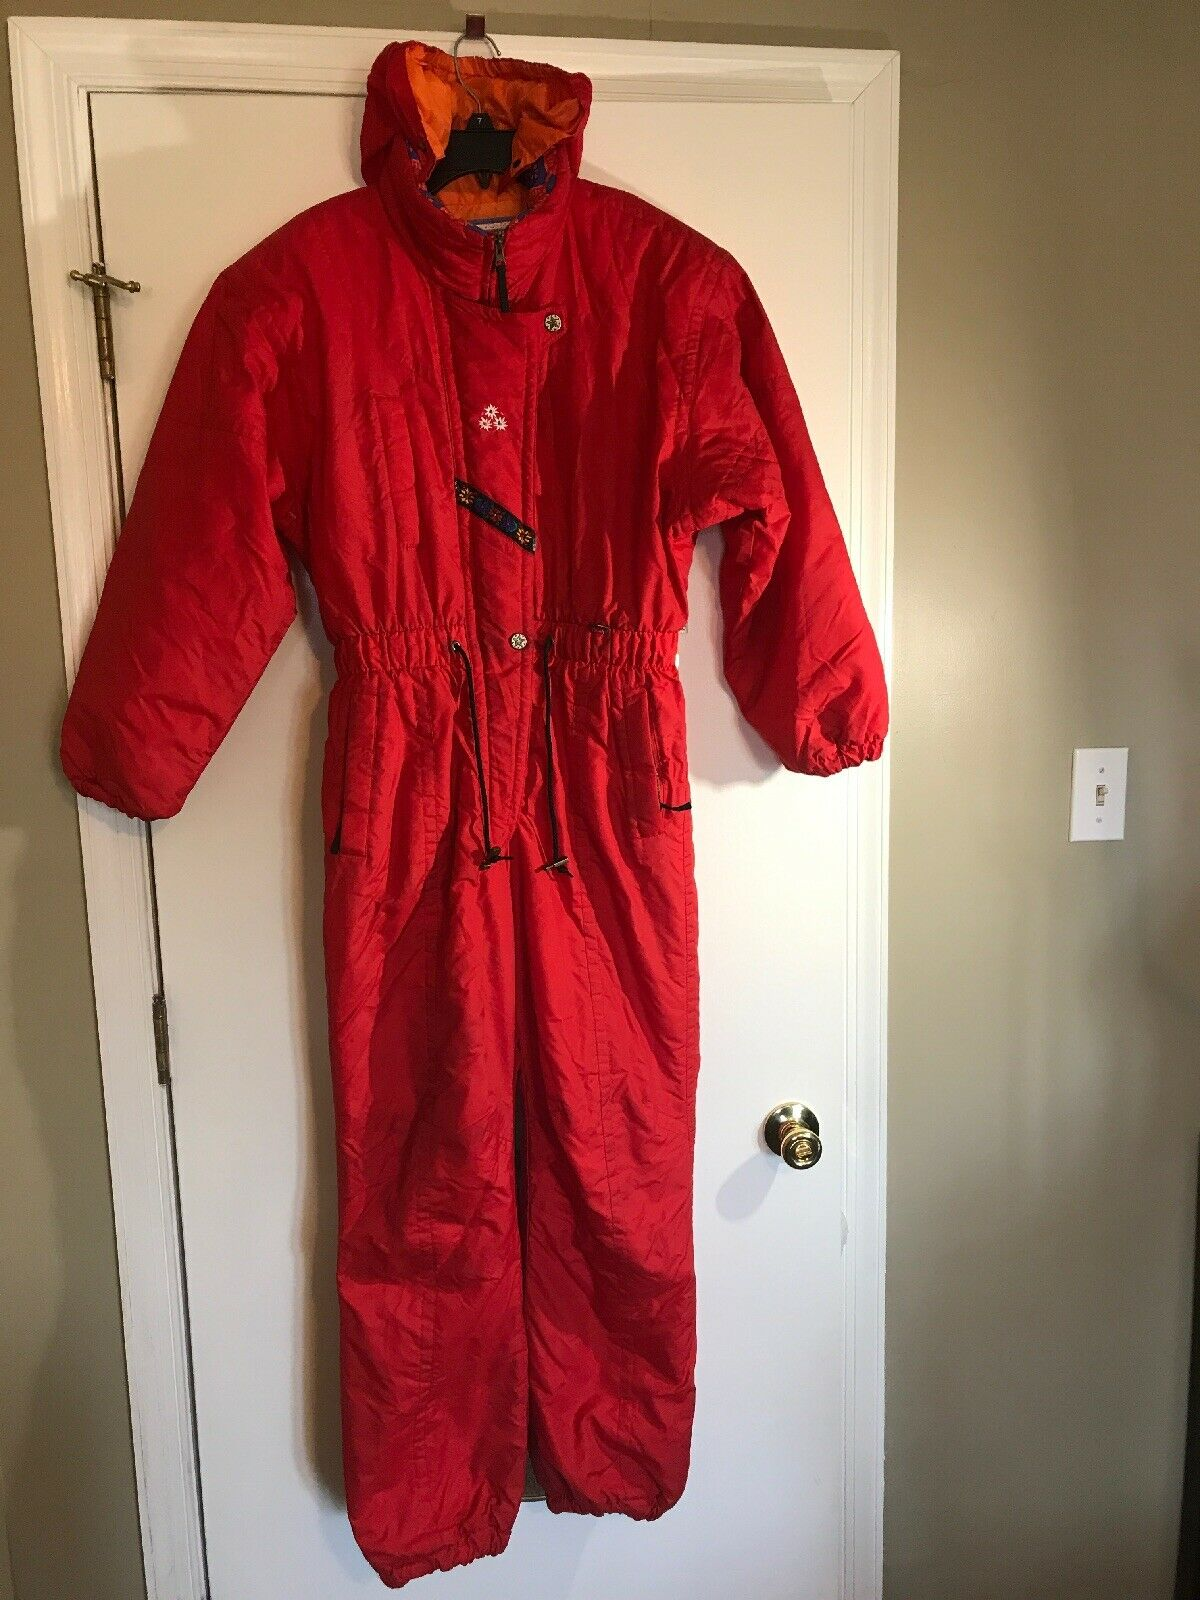 VTG Obermeyer Ski Suit Junior Sz 16 Snow Suit  Dynamic  Hooded Red One-Piece